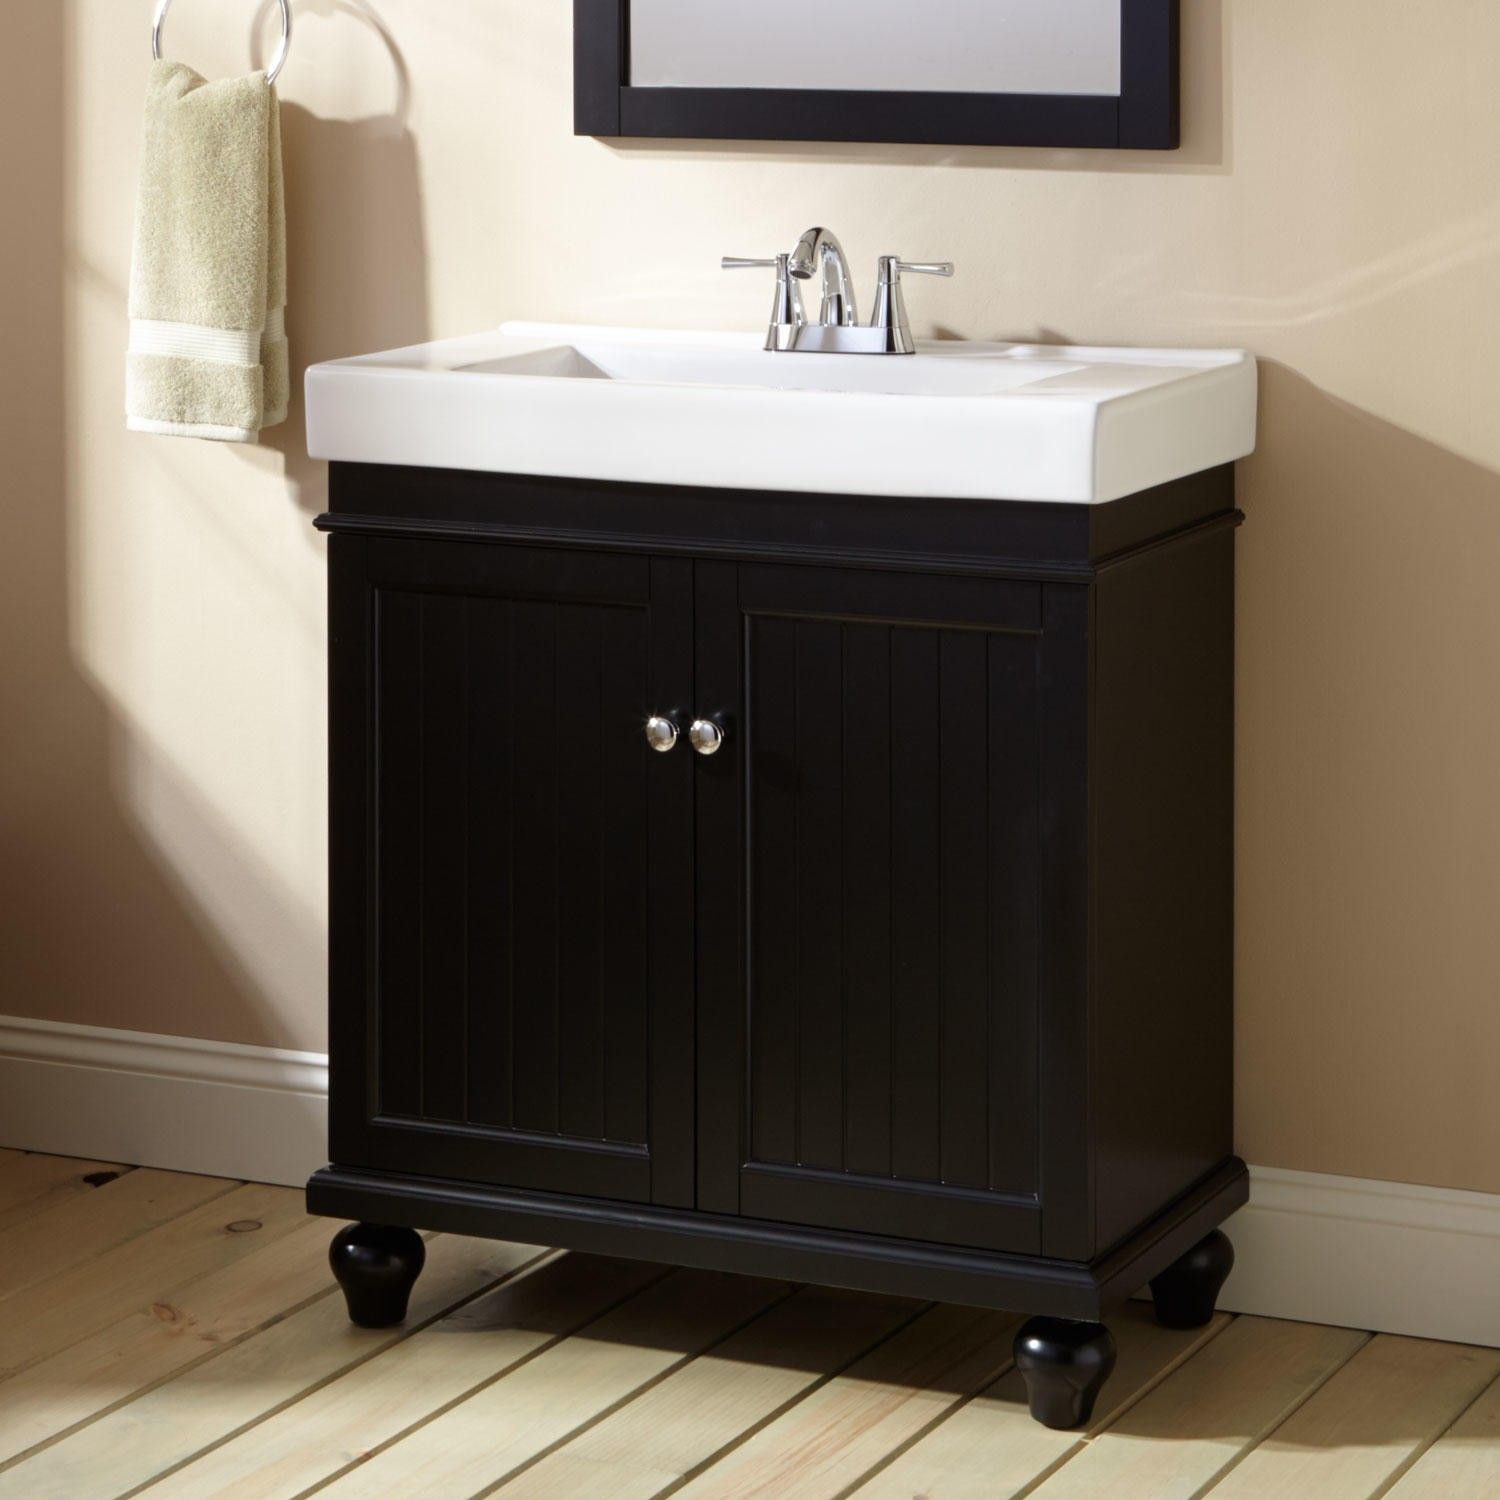 30 Lander Vanity Black Bathroom In Dimensions 1500 X Bath Cabinets If Your Is Too Little There Are Other Sizes Vani